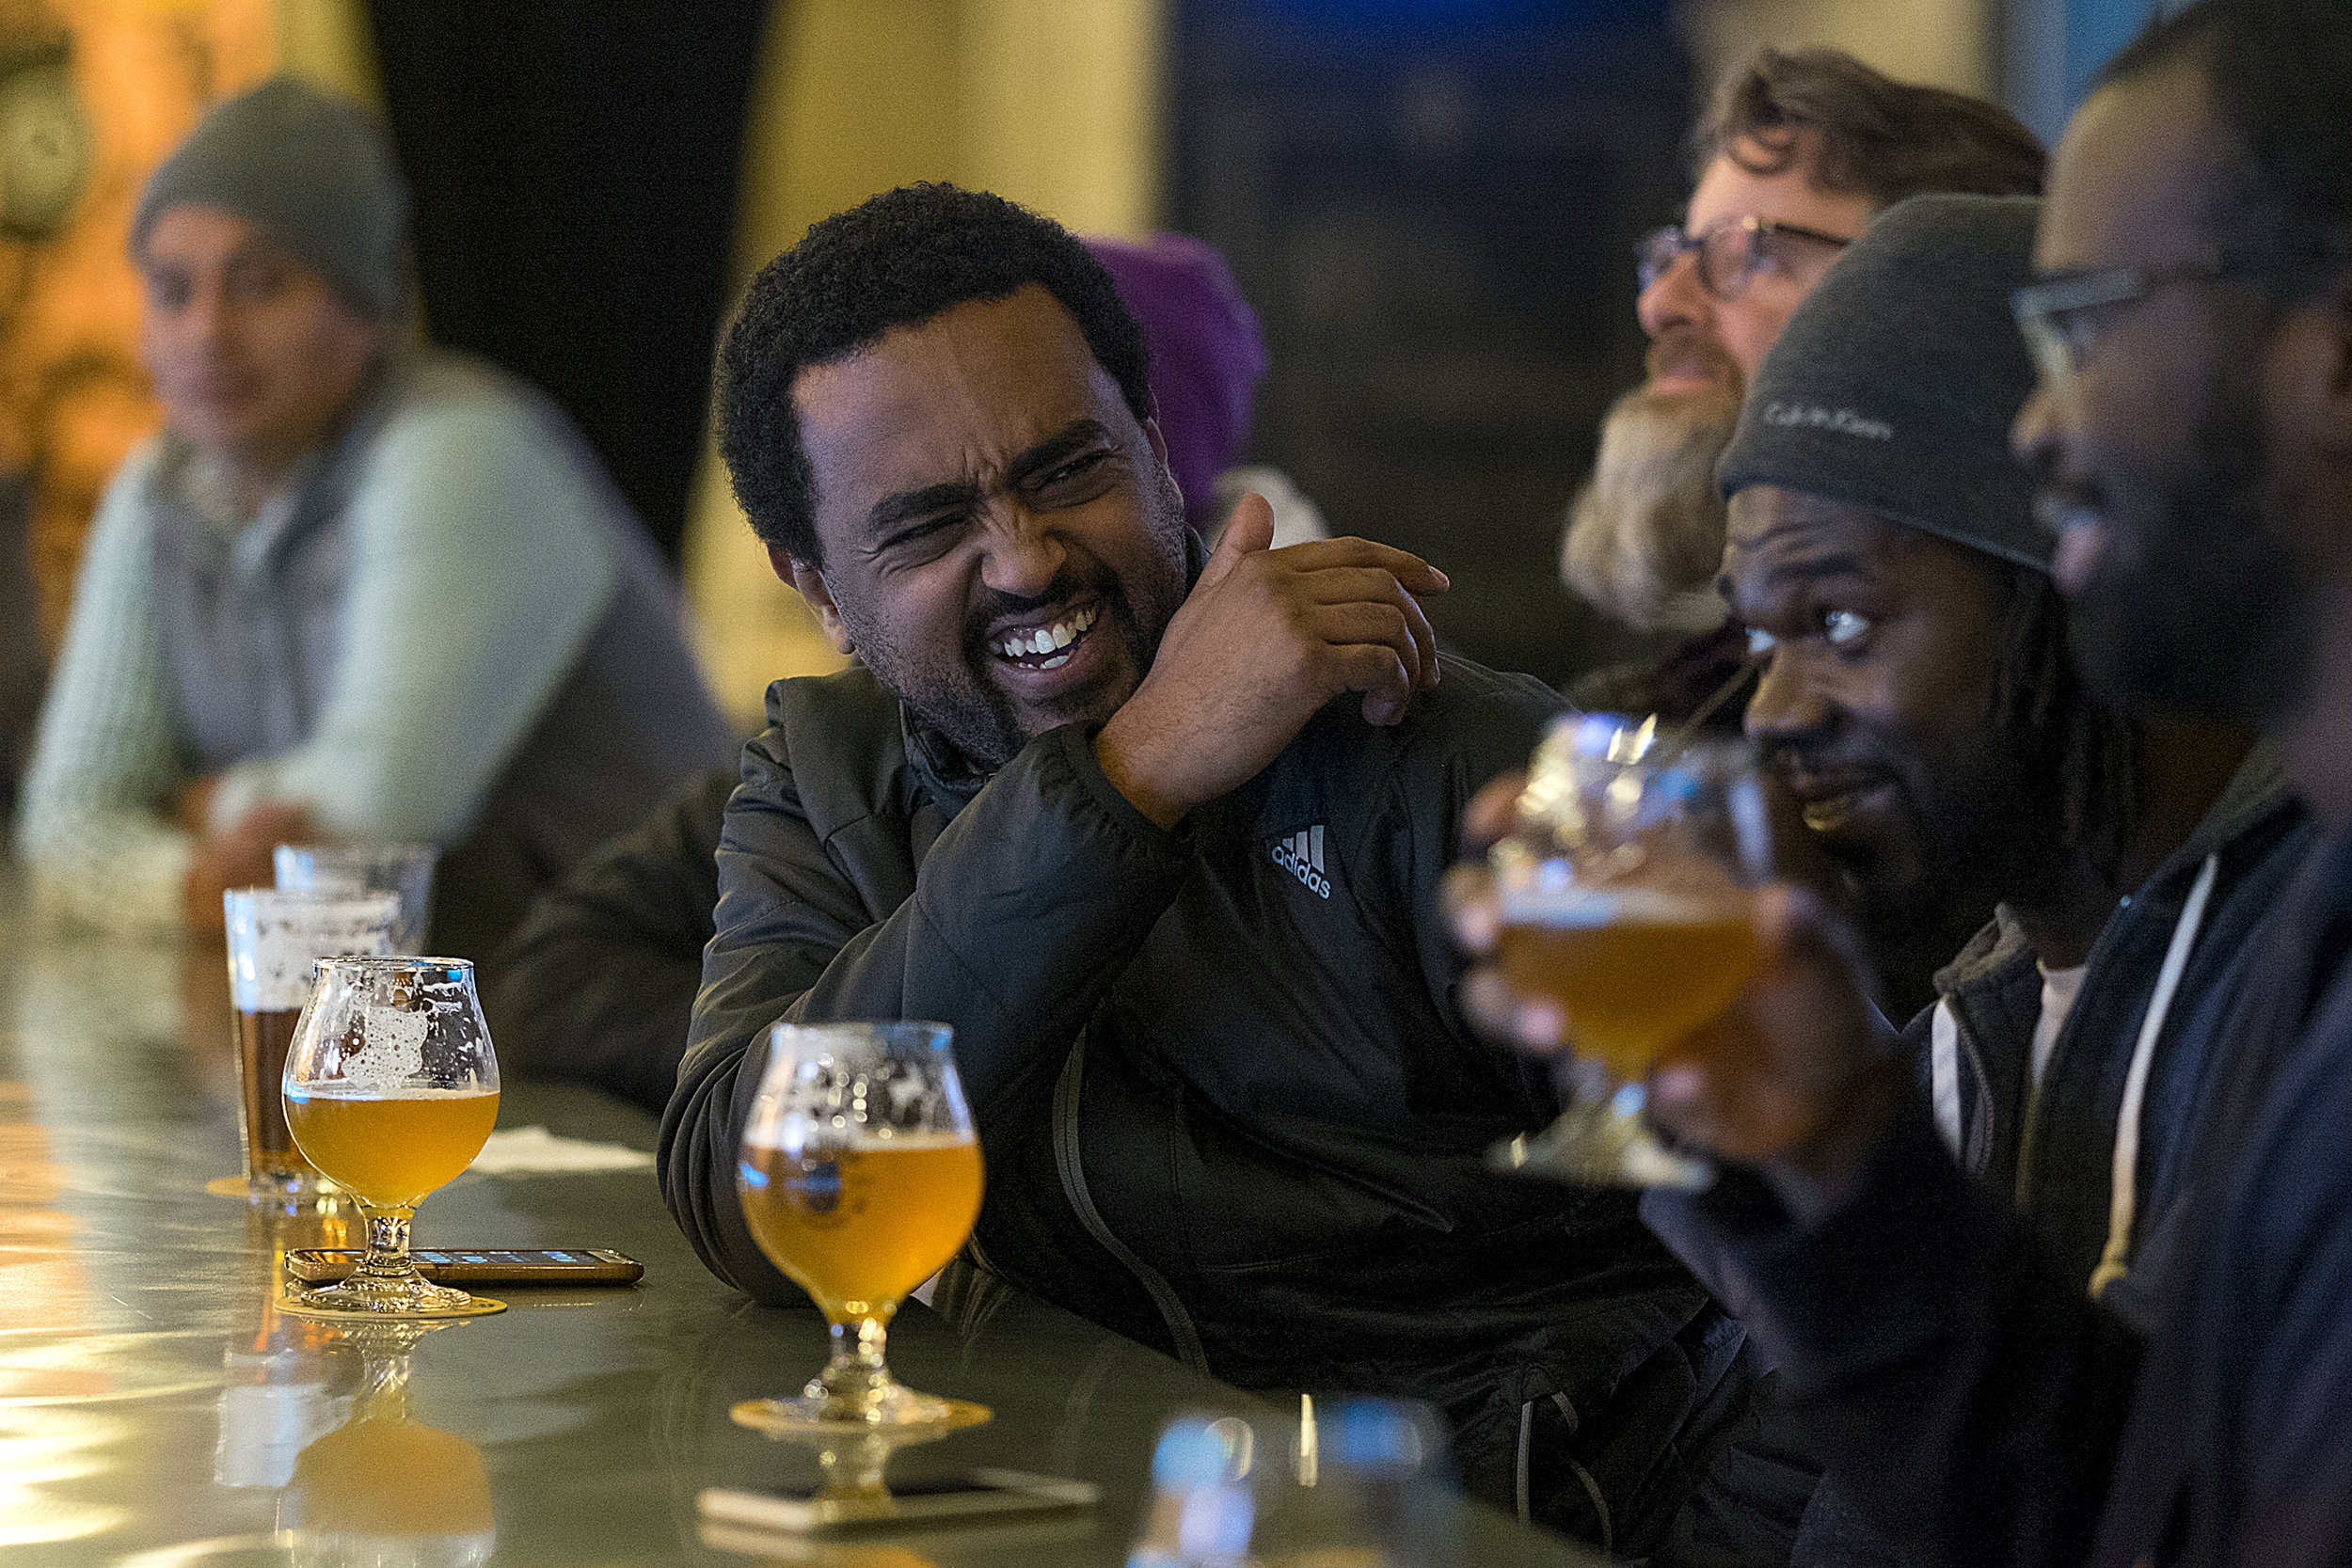 Yoni Debesai, left, Bobby Pyne and Seun Adenusa clinked glasses in a toast as they enjoyed the beer and friendship on a recent Friday night.